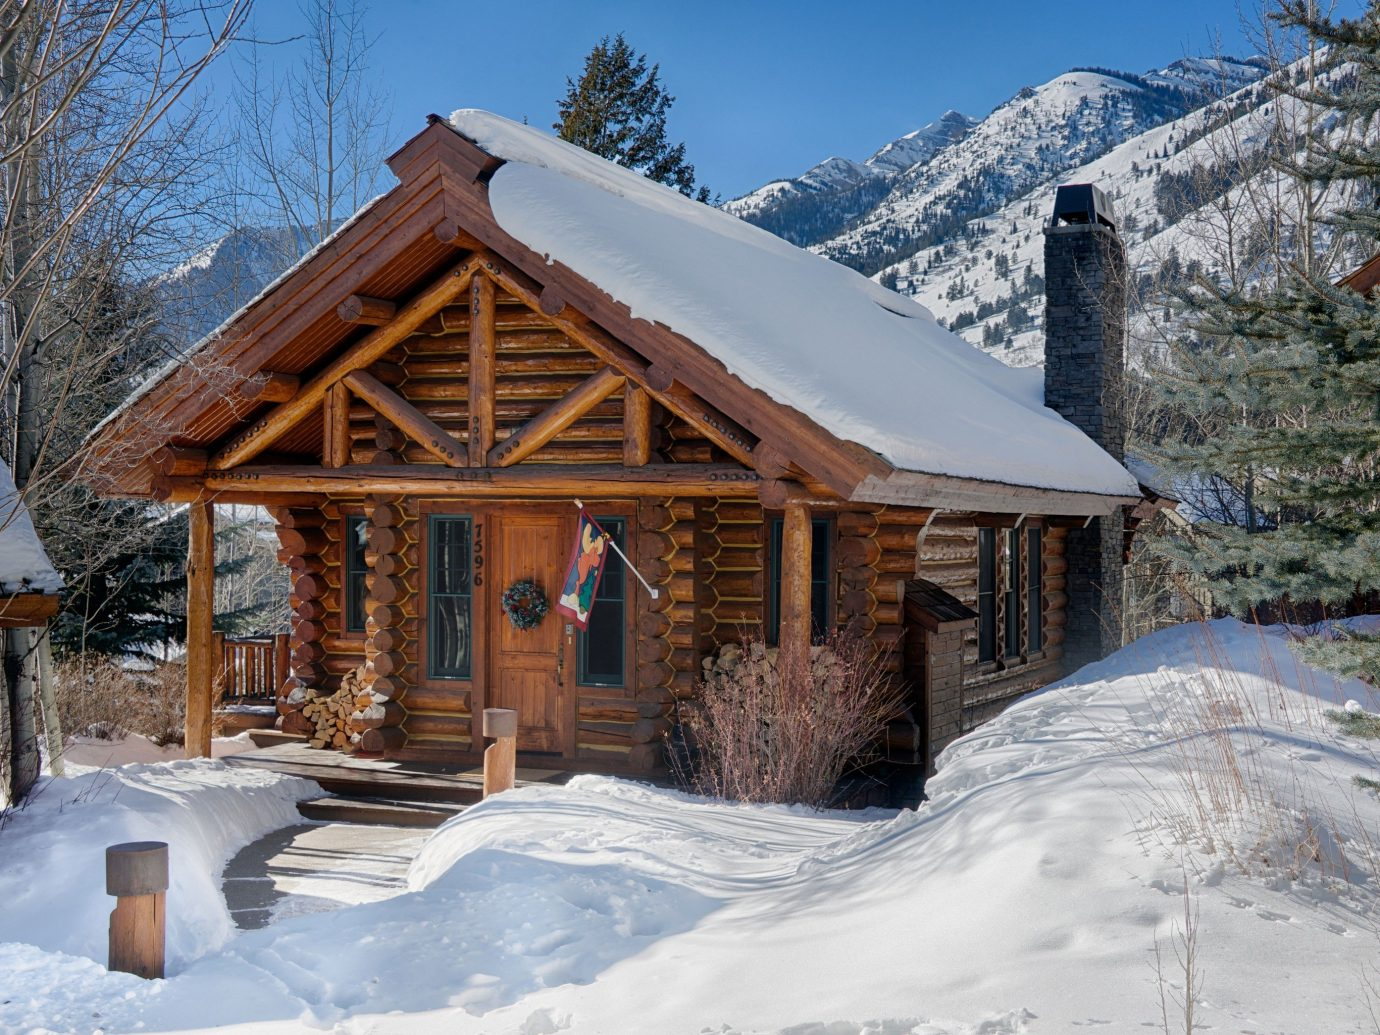 Mountains + Skiing Outdoors + Adventure Trip Ideas snow outdoor tree sky Winter mountain log cabin building weather house hut season home Nature Resort cottage sugar house estate mountain range